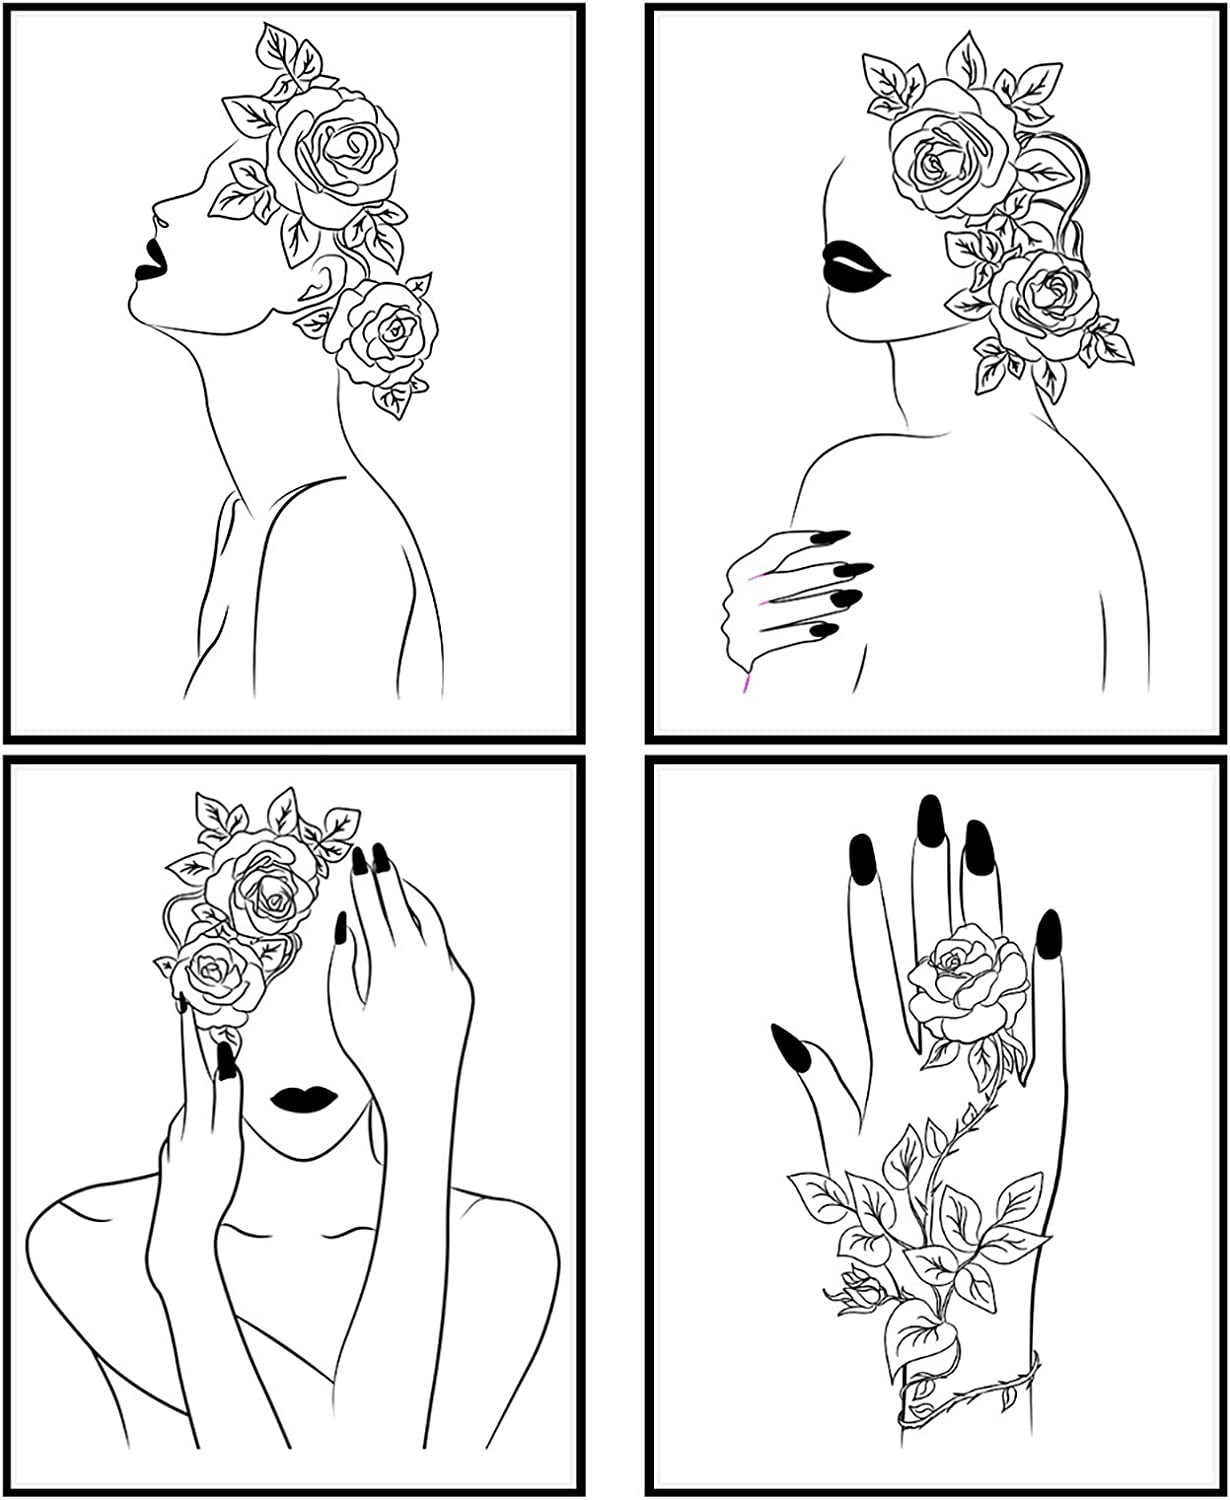 Modern 5th - Minimalist Line Art Prints (Set of 4 Unframed - 8 x 10 Inches) Woman and Rose Room Decor Art Prints, Minimal Drawing Wall Art Black and White Prints, Unframed